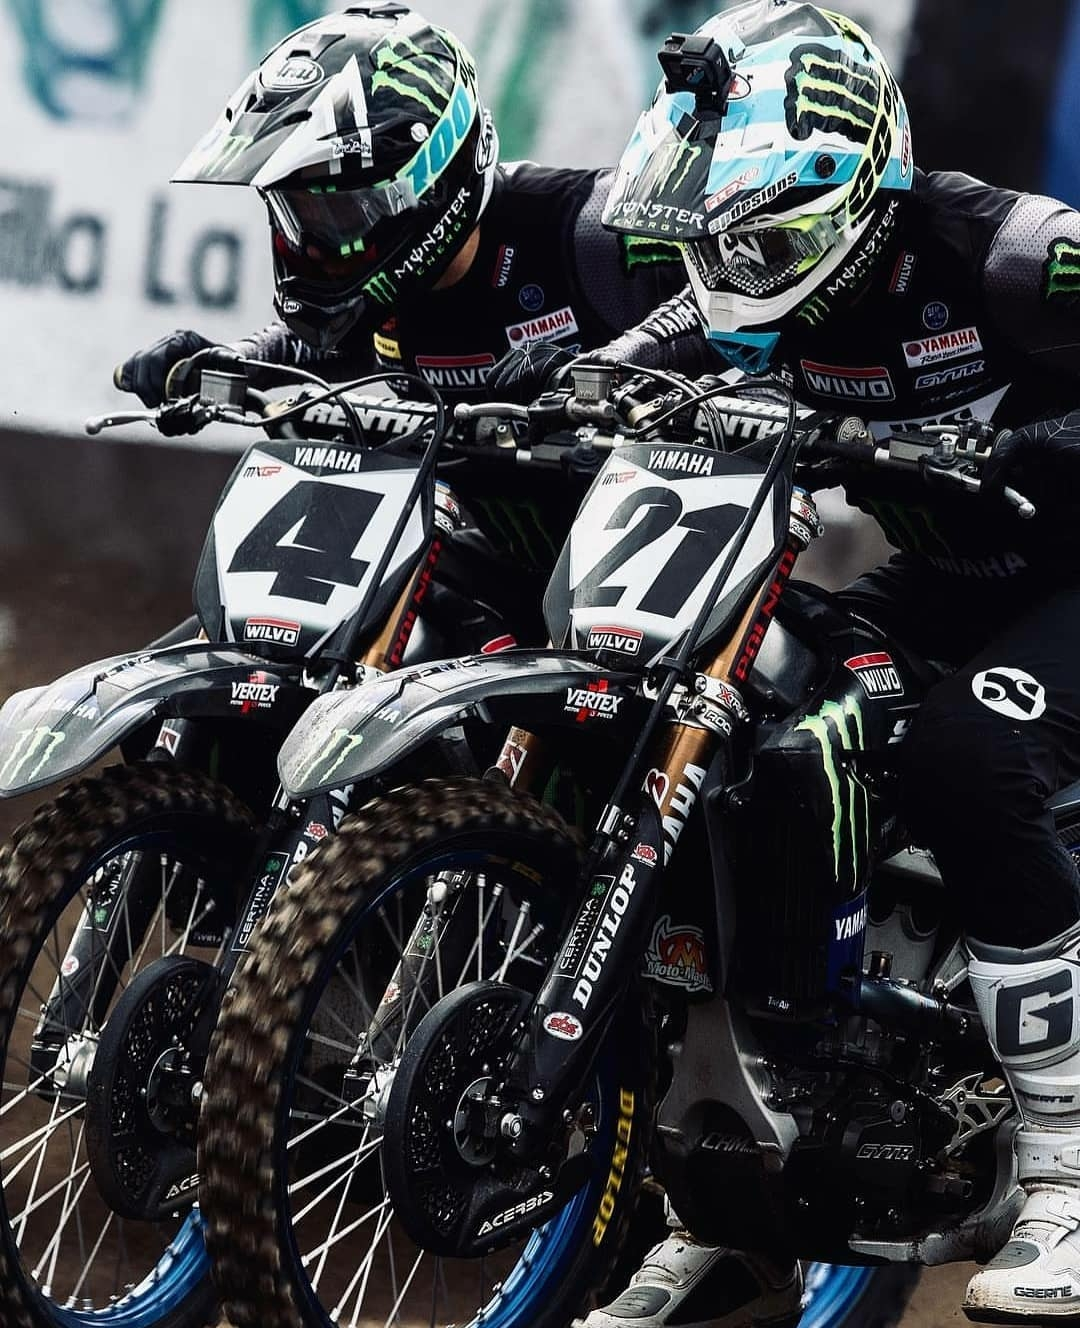 the manly life - yamaha motocross racers side by side